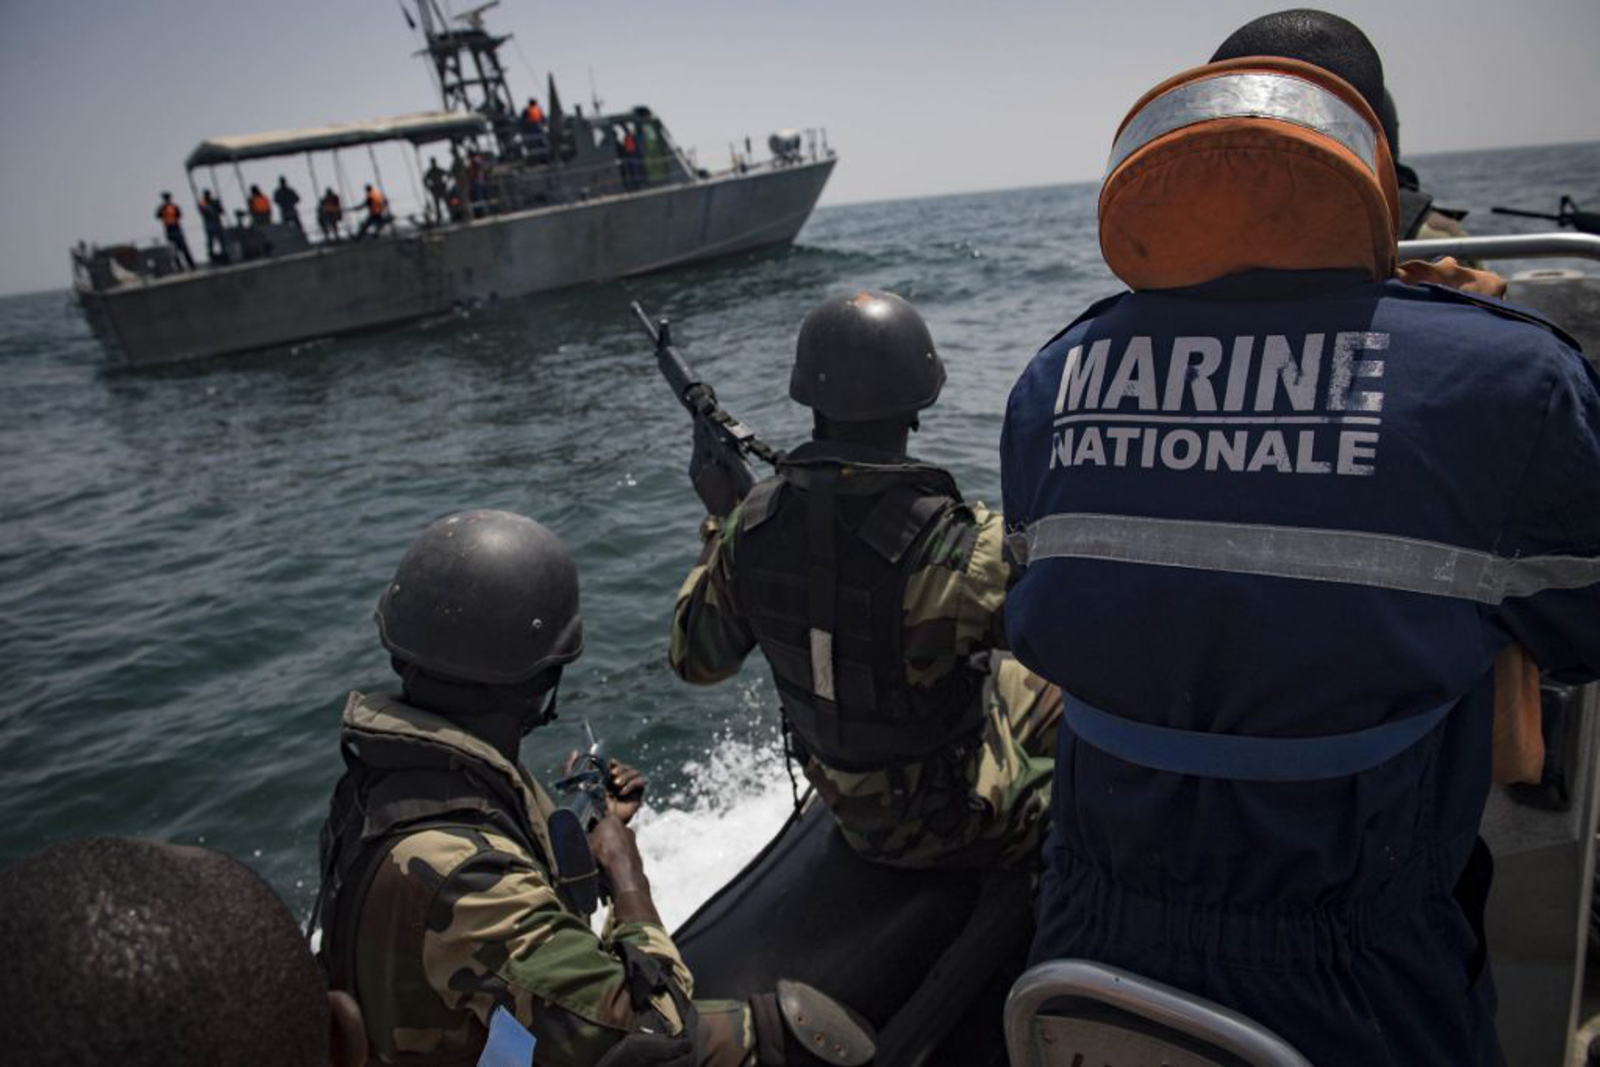 Gulf of Guinea remains world's piracy hotspot in 2021, according to IMB's latest figures